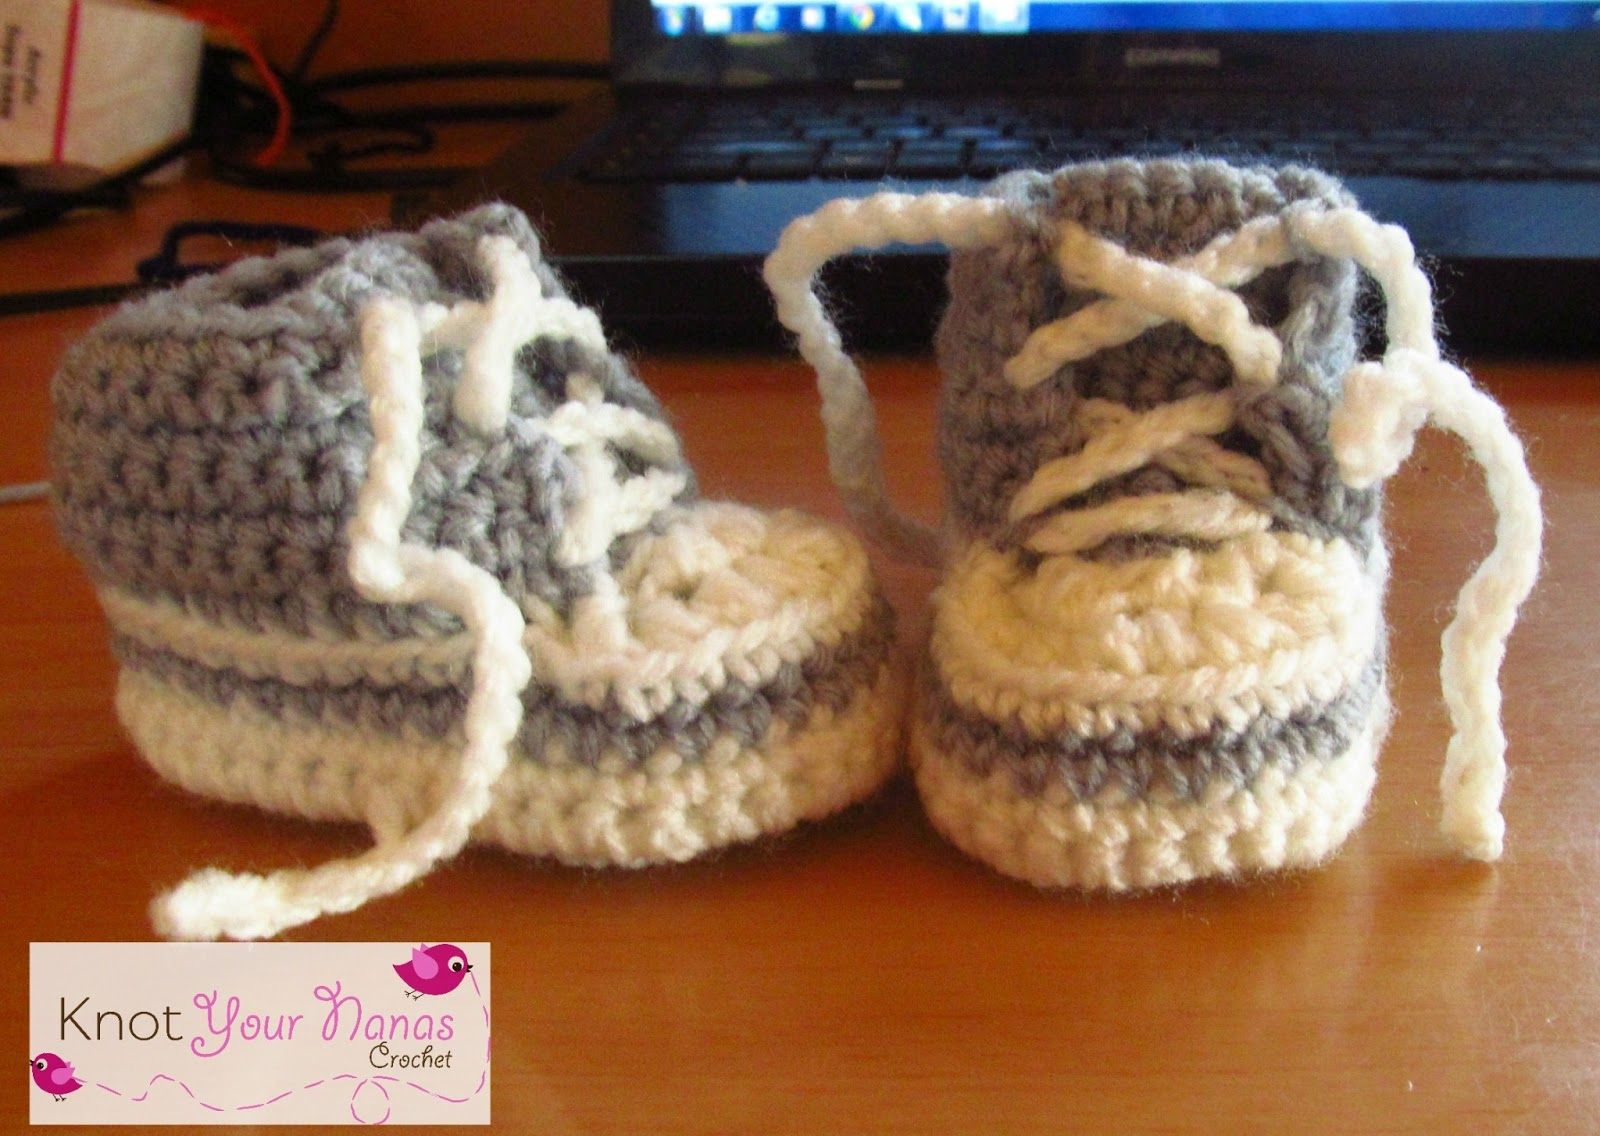 Knot your nanas crochet crochet converse newborn high tops free crochet newborn high tops bankloansurffo Image collections